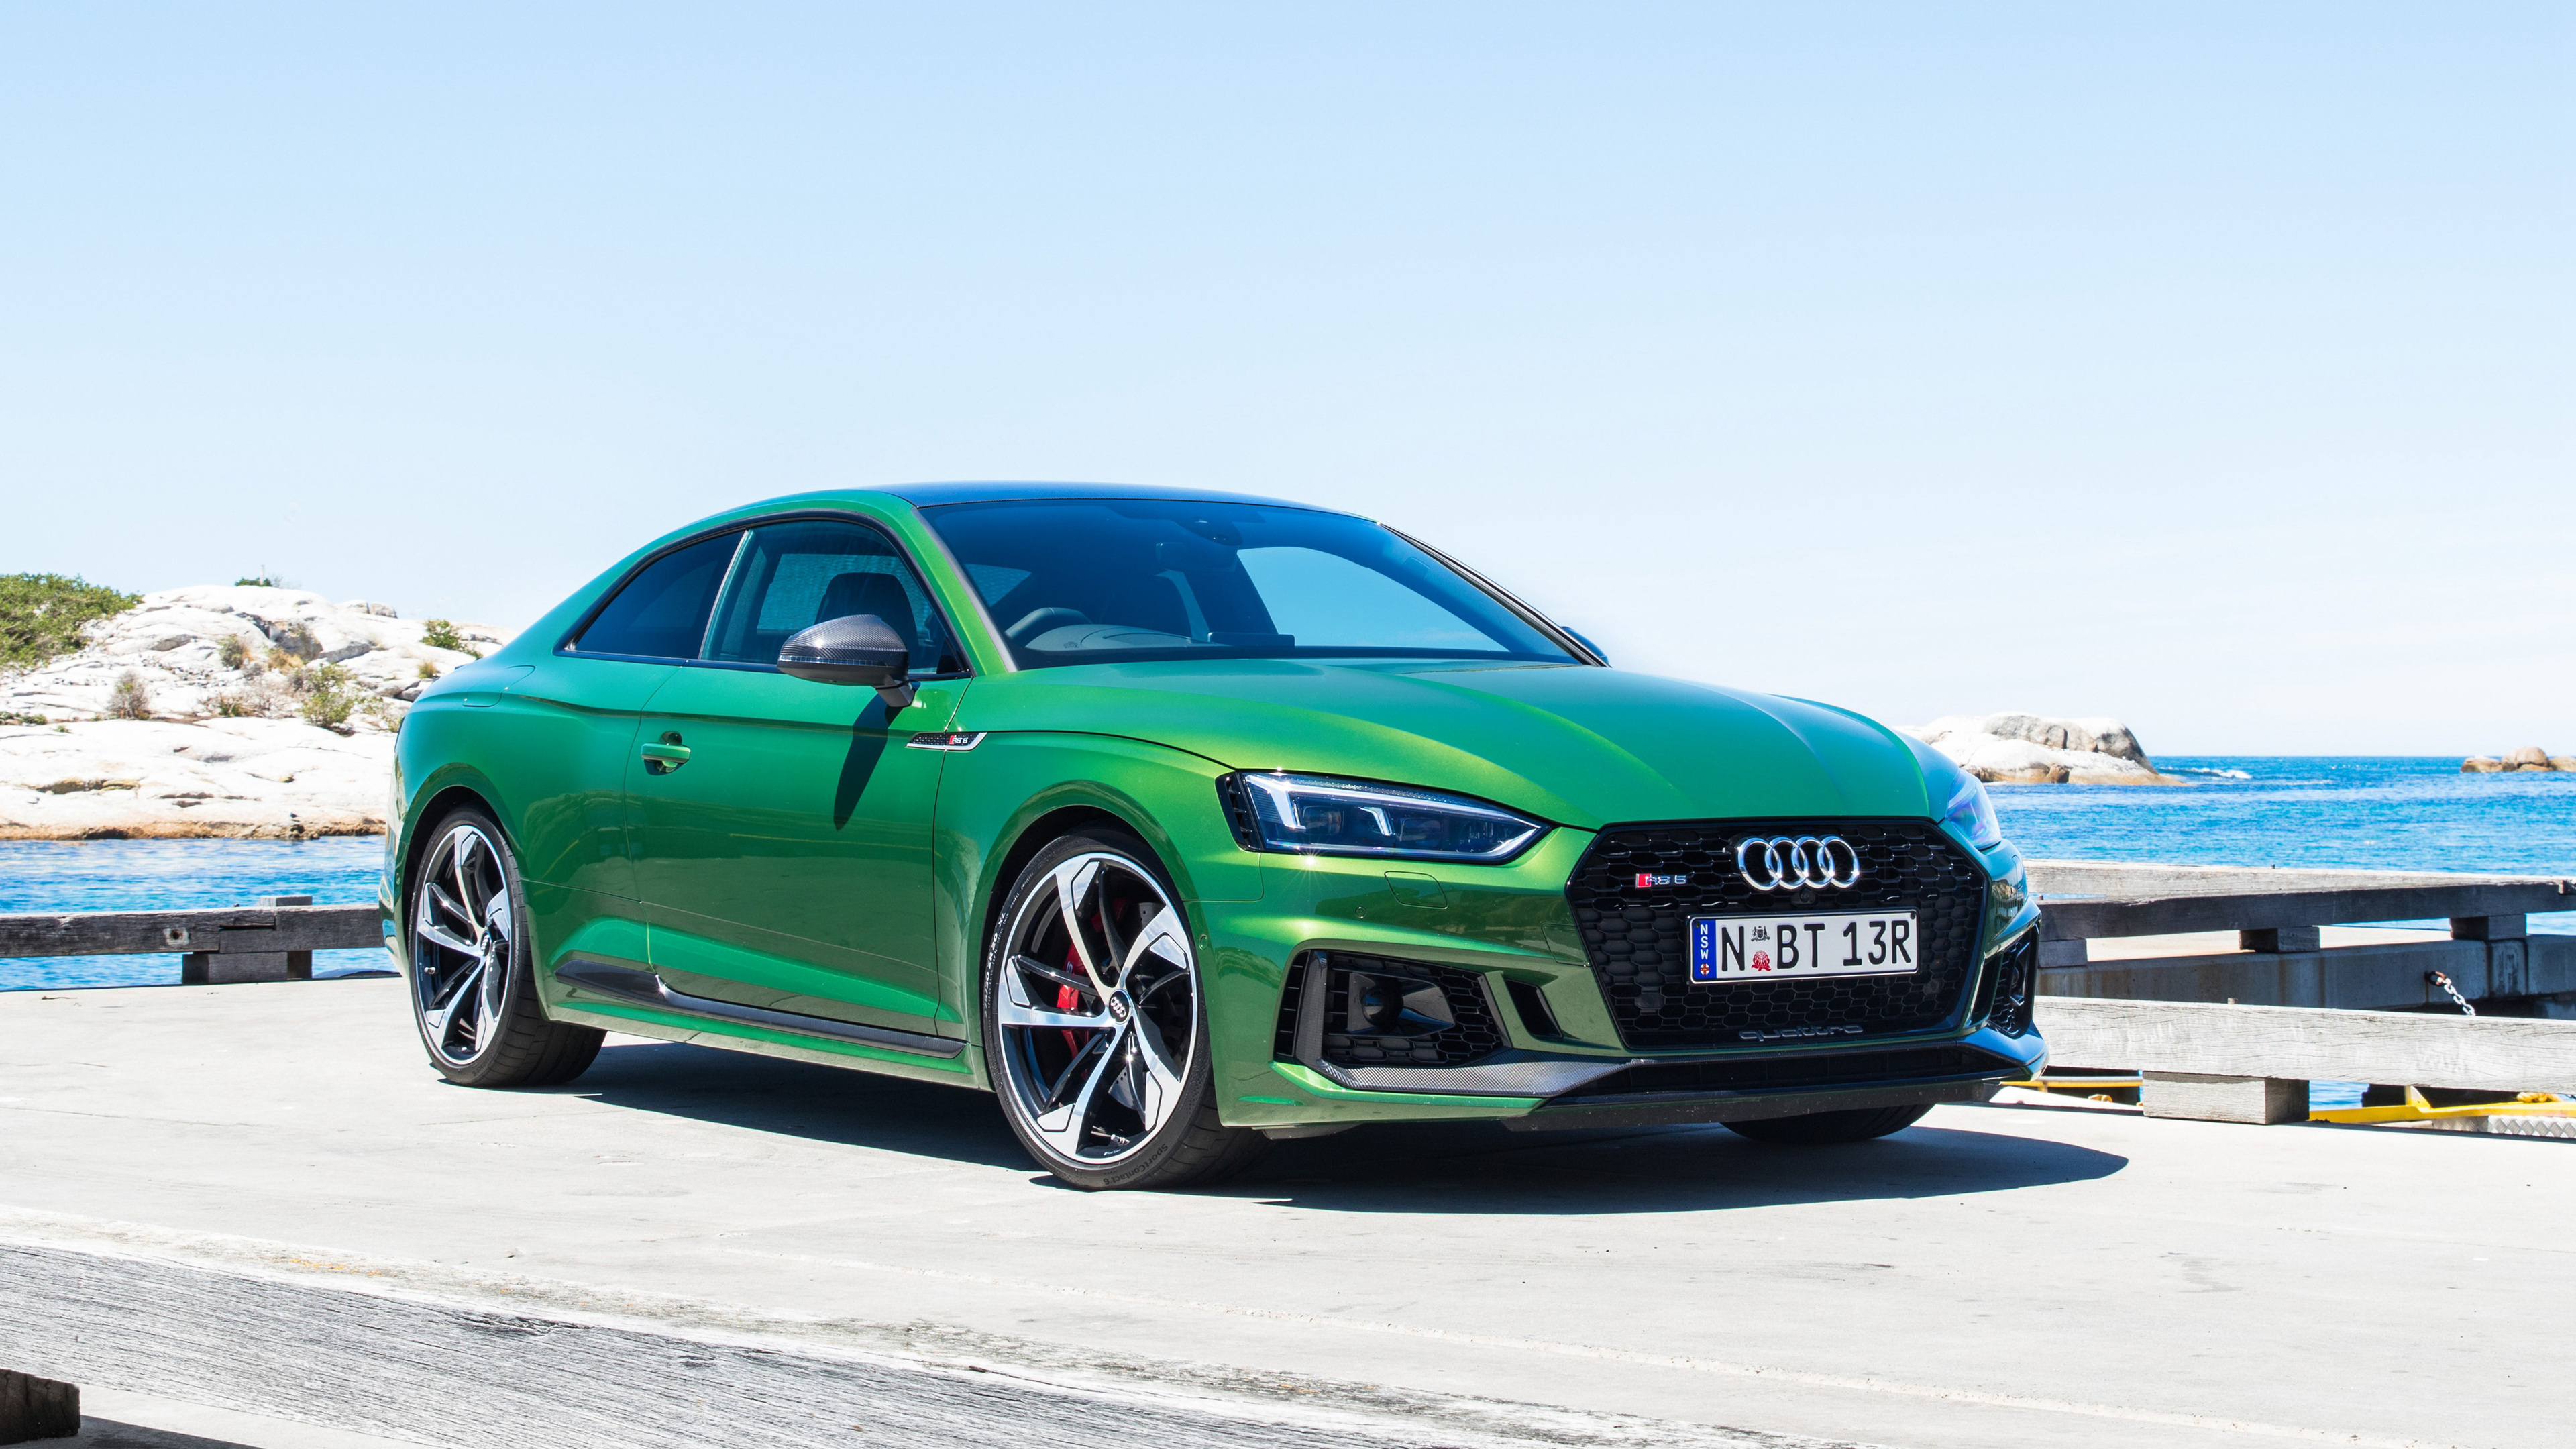 audi rs5 coupe 4k 1539108869 - Audi Rs5 Coupe 4k - hd-wallpapers, cars wallpapers, audi wallpapers, audi rs5 wallpapers, 4k-wallpapers